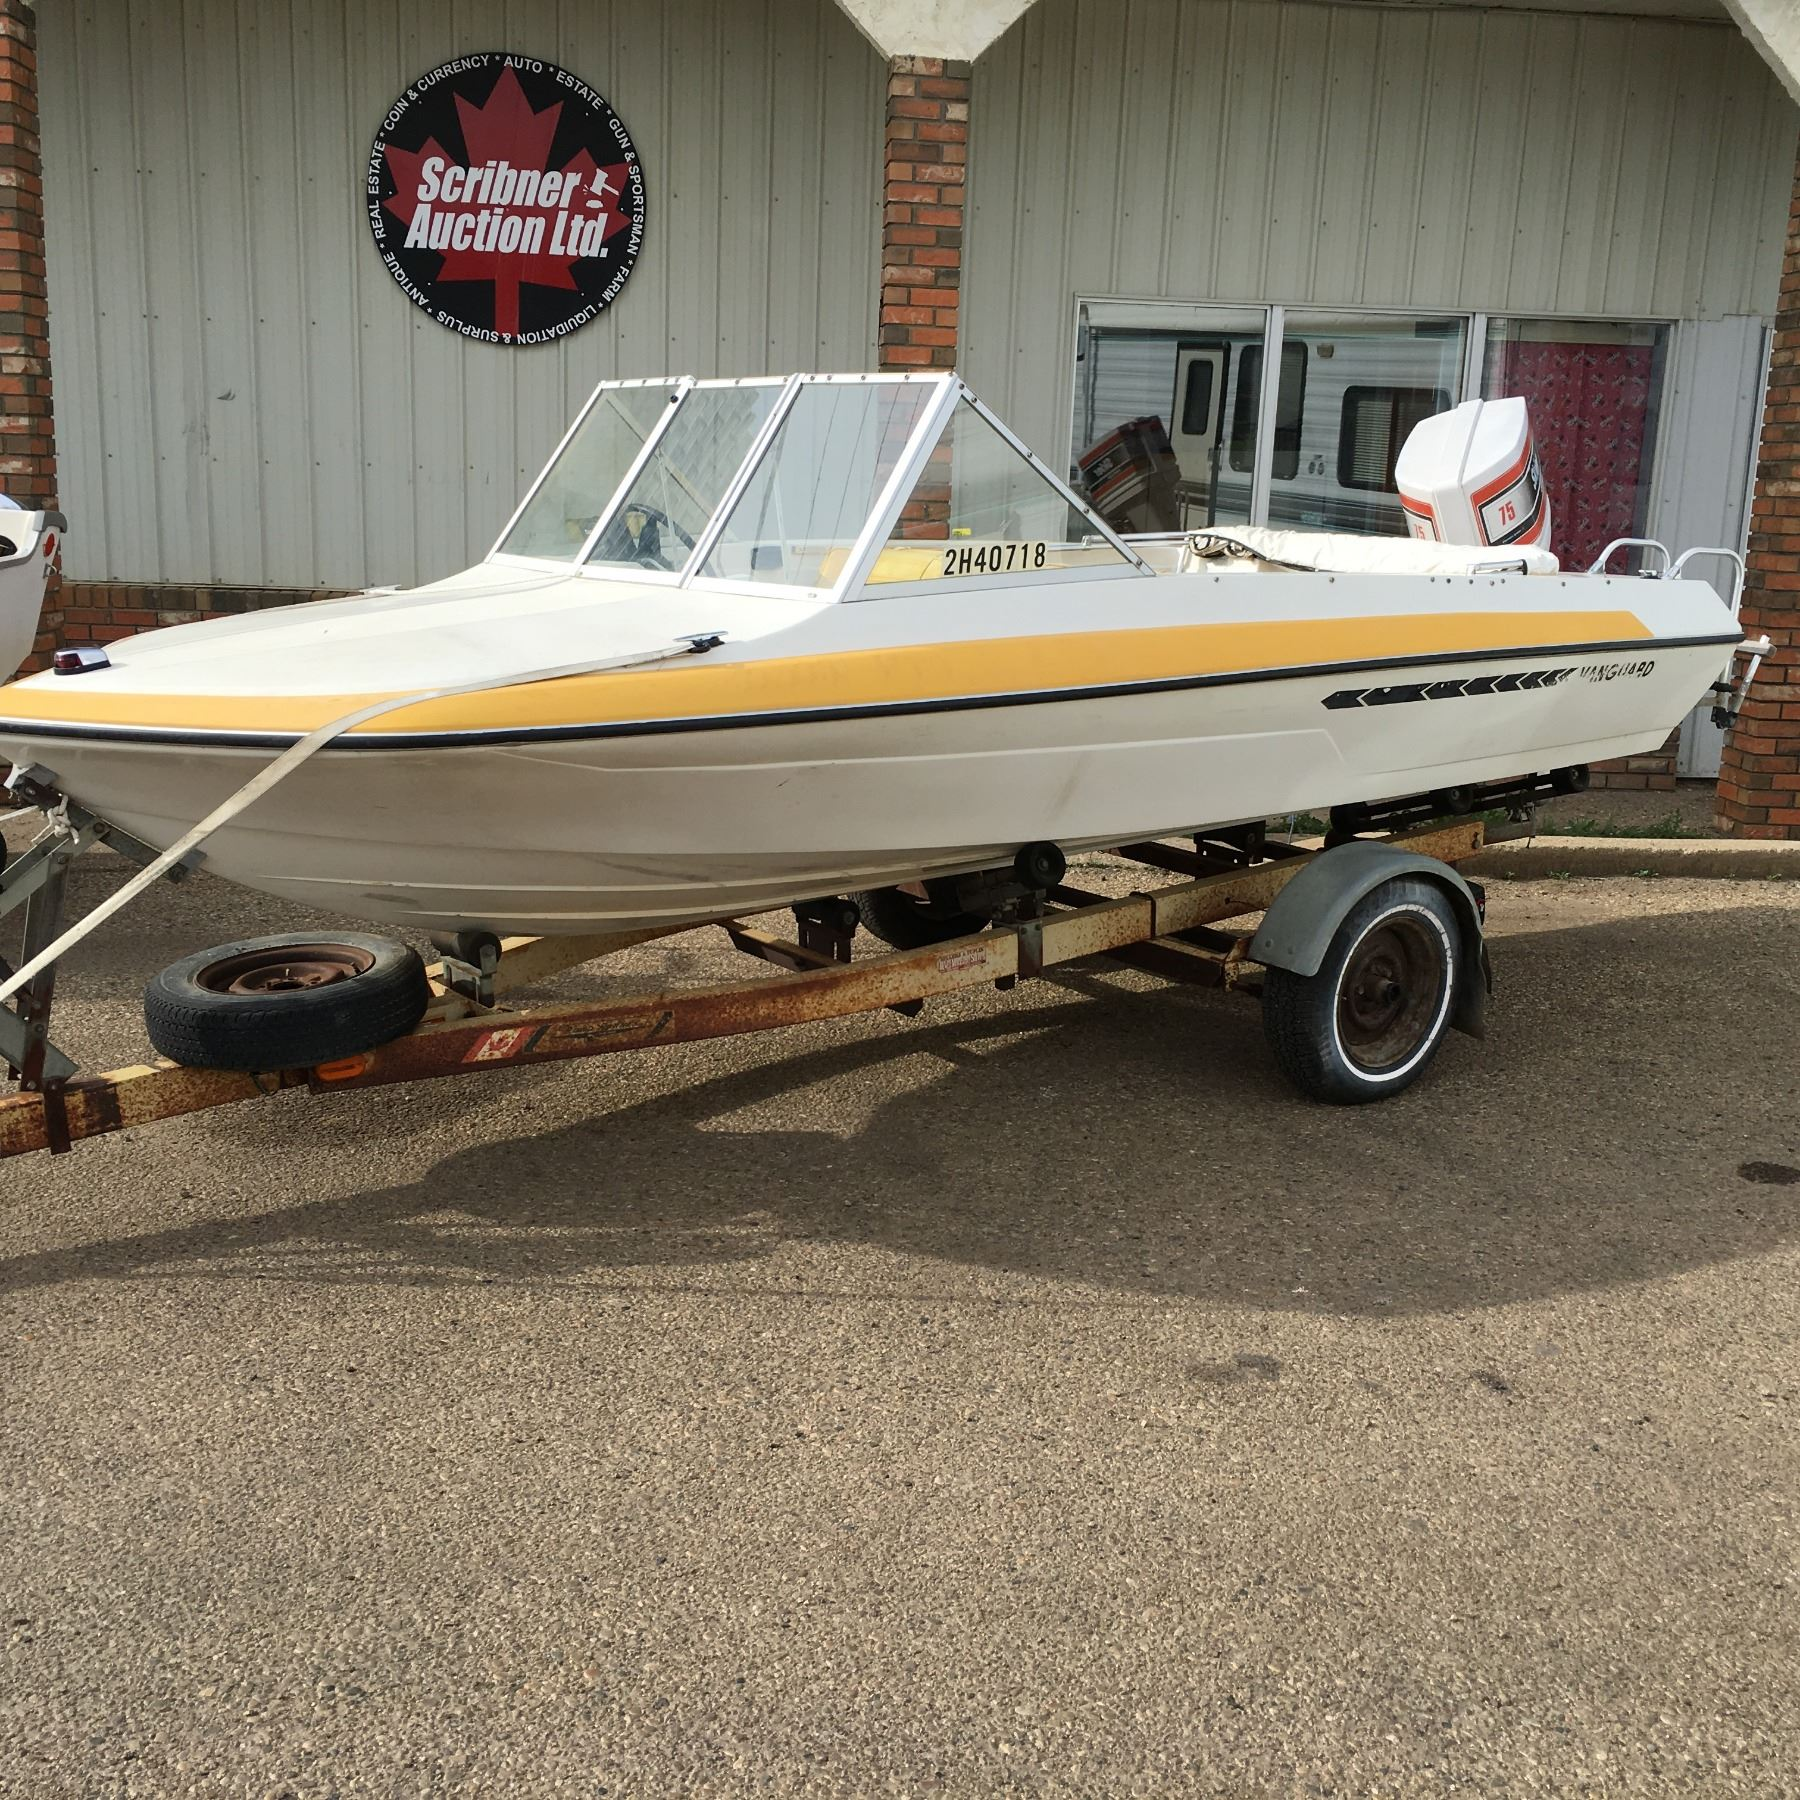 Vanguard 16' Boat w/75hp Chrysler Outboard Motor & Roadrunner Trailer (Note: Consignor reports that